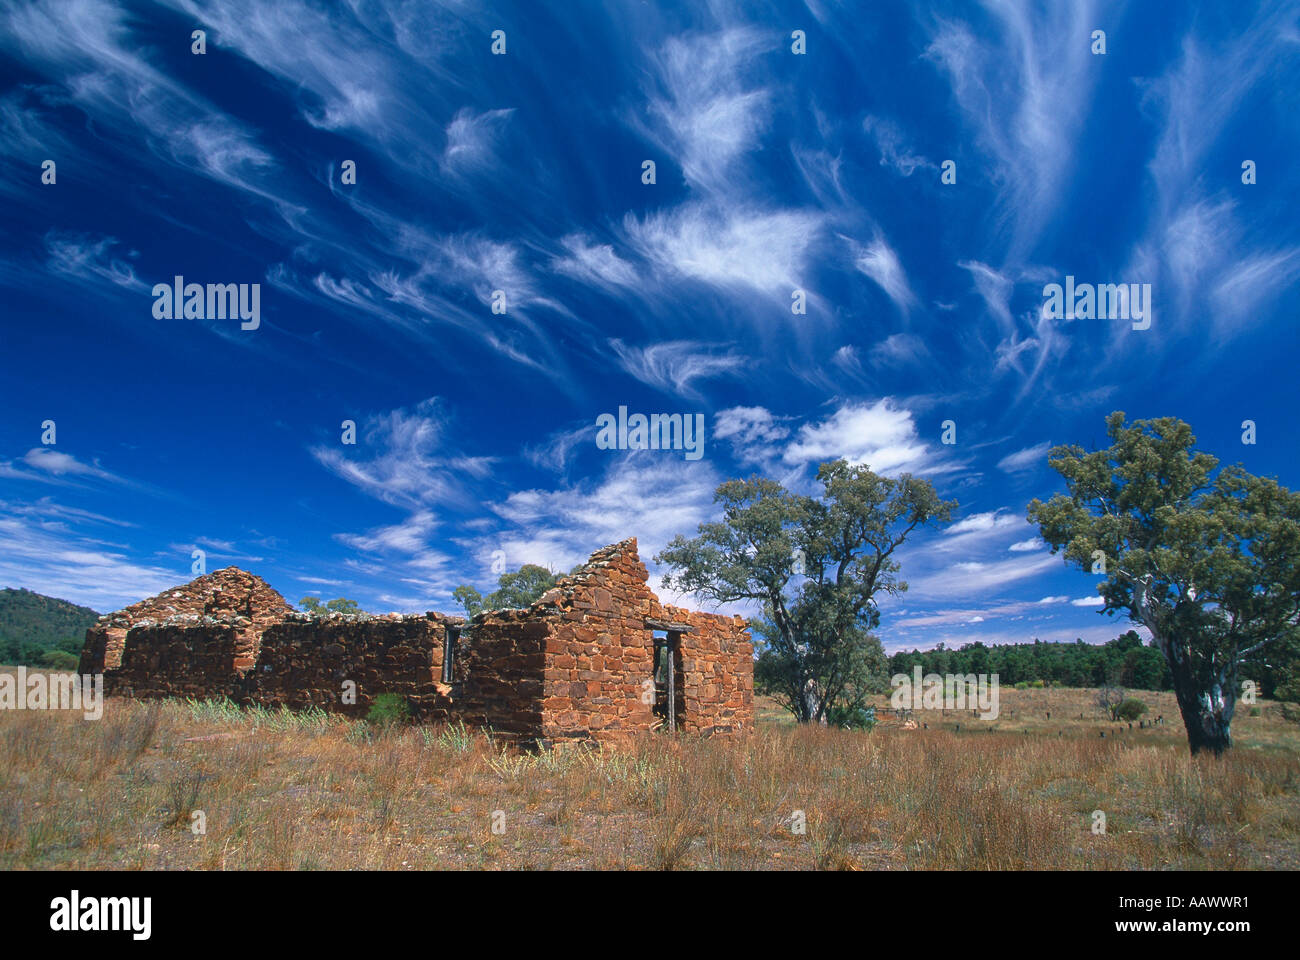 the Outback dramatic sky over early settlers ruins Flinders Ranges South Australia - Stock Image